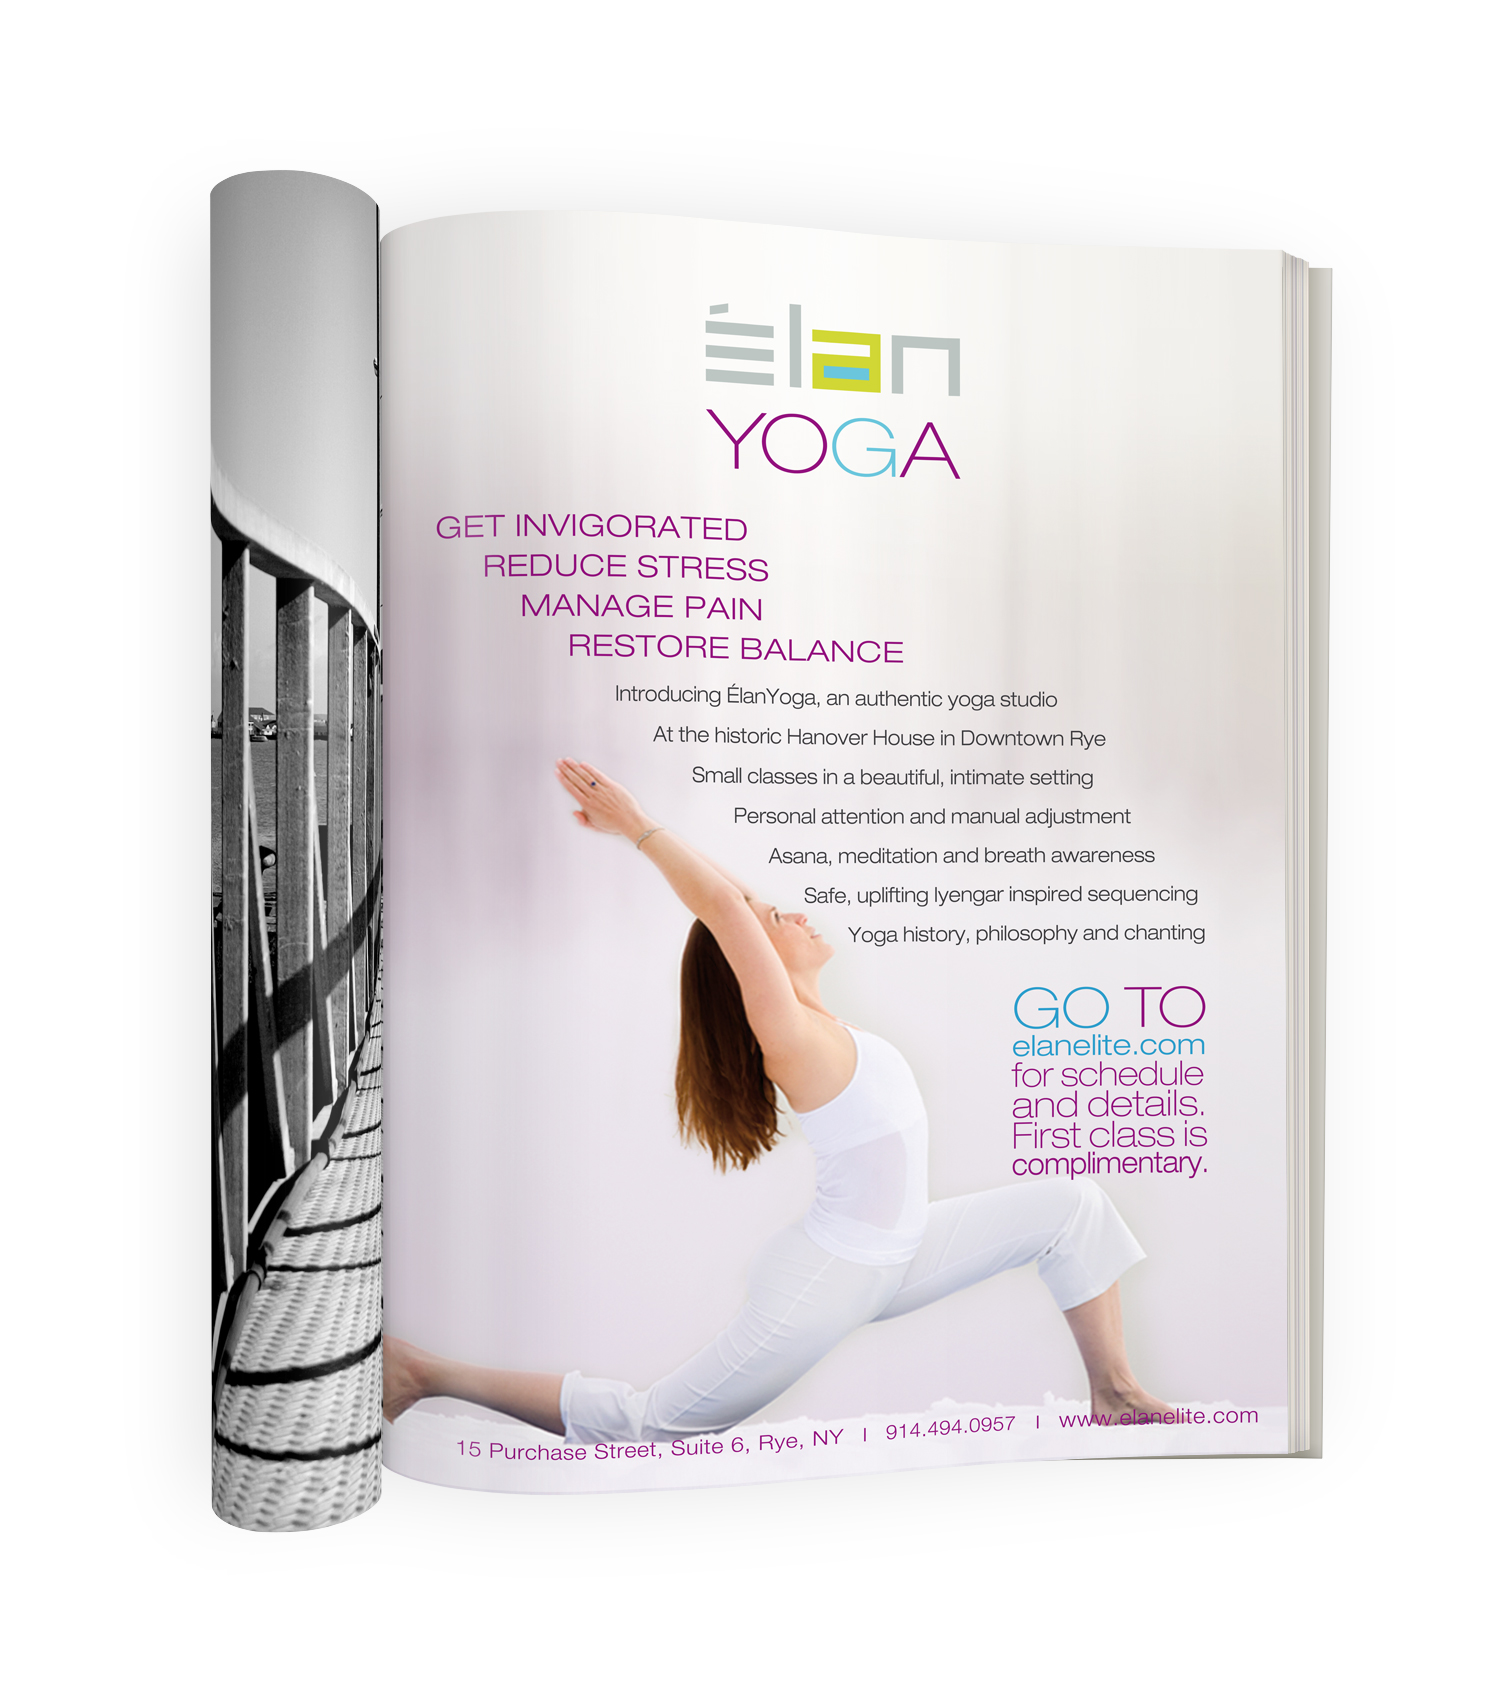 Building vibrant brands solutions to Elan Elite & Elan Yoga.  Strategy | Branding | Identity | Design| Creative direction | Web Design | UI/UX | Interactive experience | SM Campaigns | Infographics |  .  .  .  .  .  .  .  .  .  .  #yoga, #responsive, #webdesign, #branding, #ux, #ui, #best, #website, ##gooddesign #websitedesigner, #designer, #strategy, #productlaunch, #uxdesign, #uidesign, #cooldesign, #creativeagency, #photoshoot, #branddevelopment, #appdesign, #posters, #infographics, #web, #fitness, #yoga,#studio,#businesscards,#icons,#nyc, #ny, #rye, #meditation,#newyear, #training